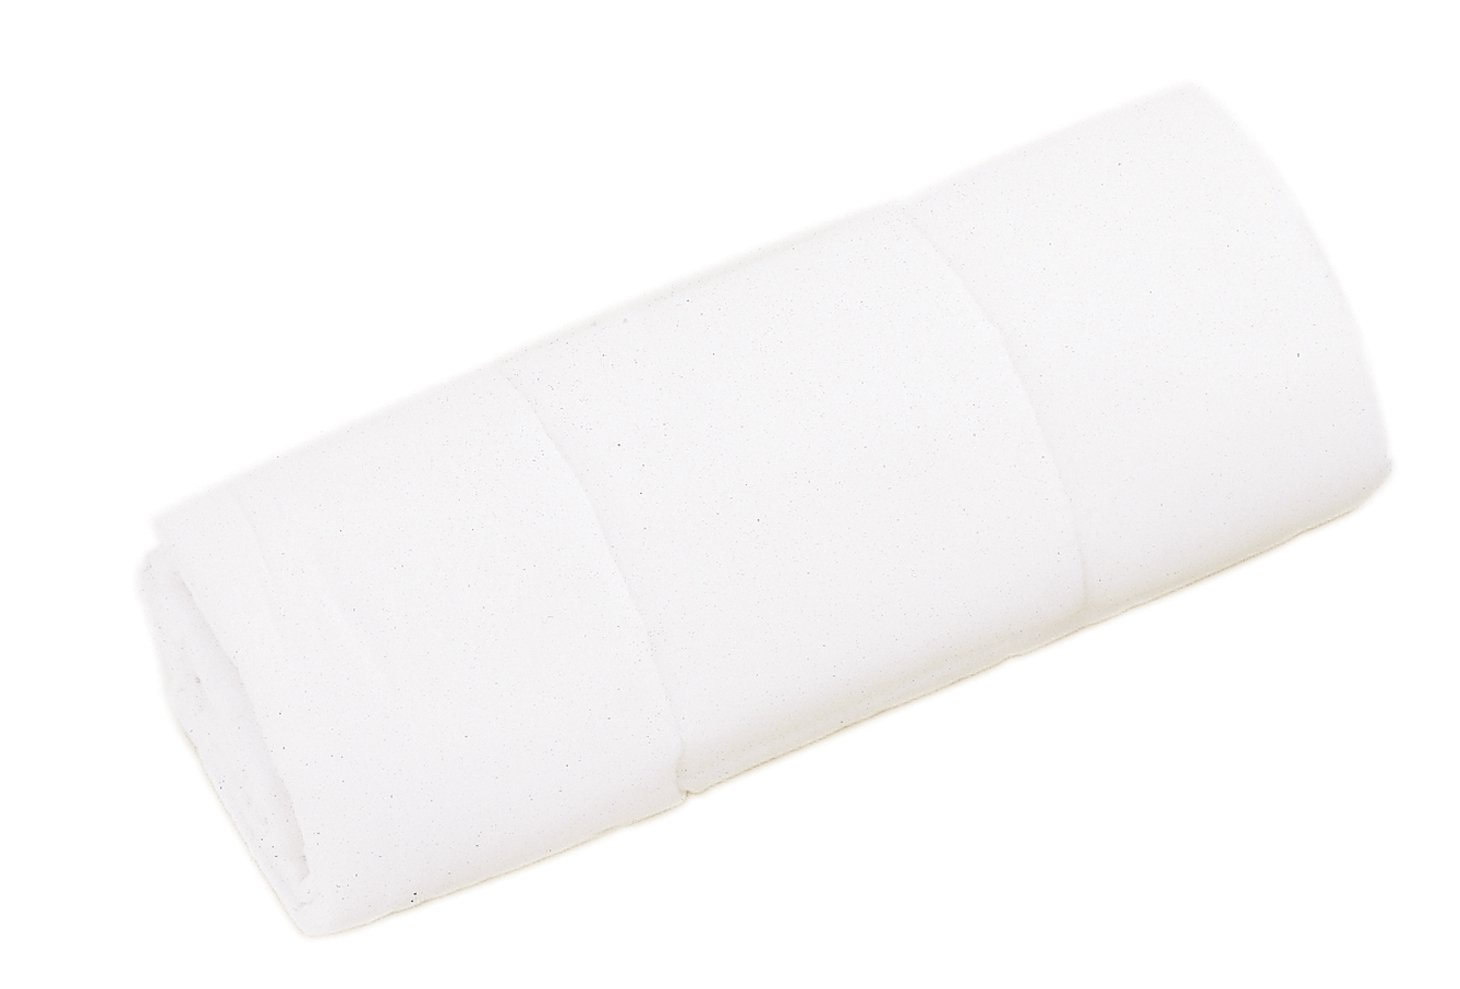 12-Inch Perri's Pillow Wraps, White